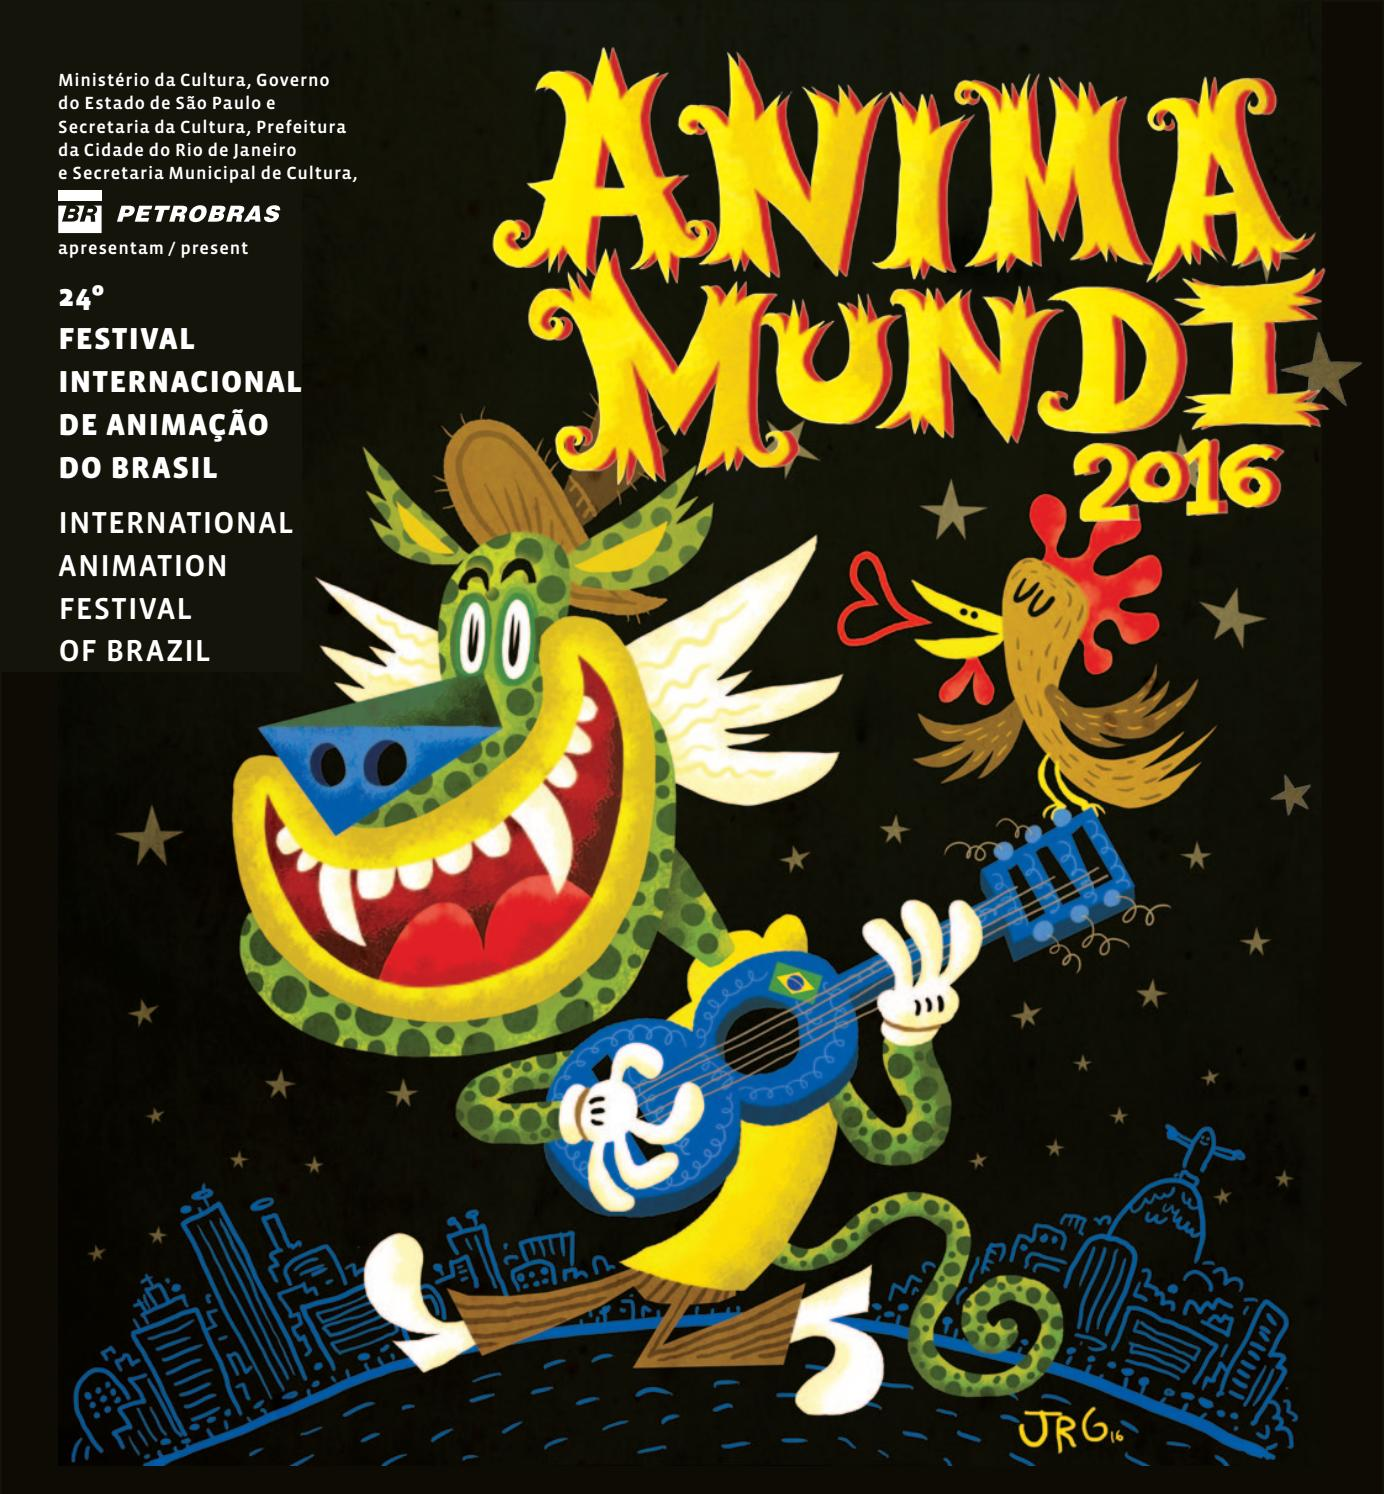 Catlogo festival anima mundi 2016 by anima mundi issuu fandeluxe Image collections